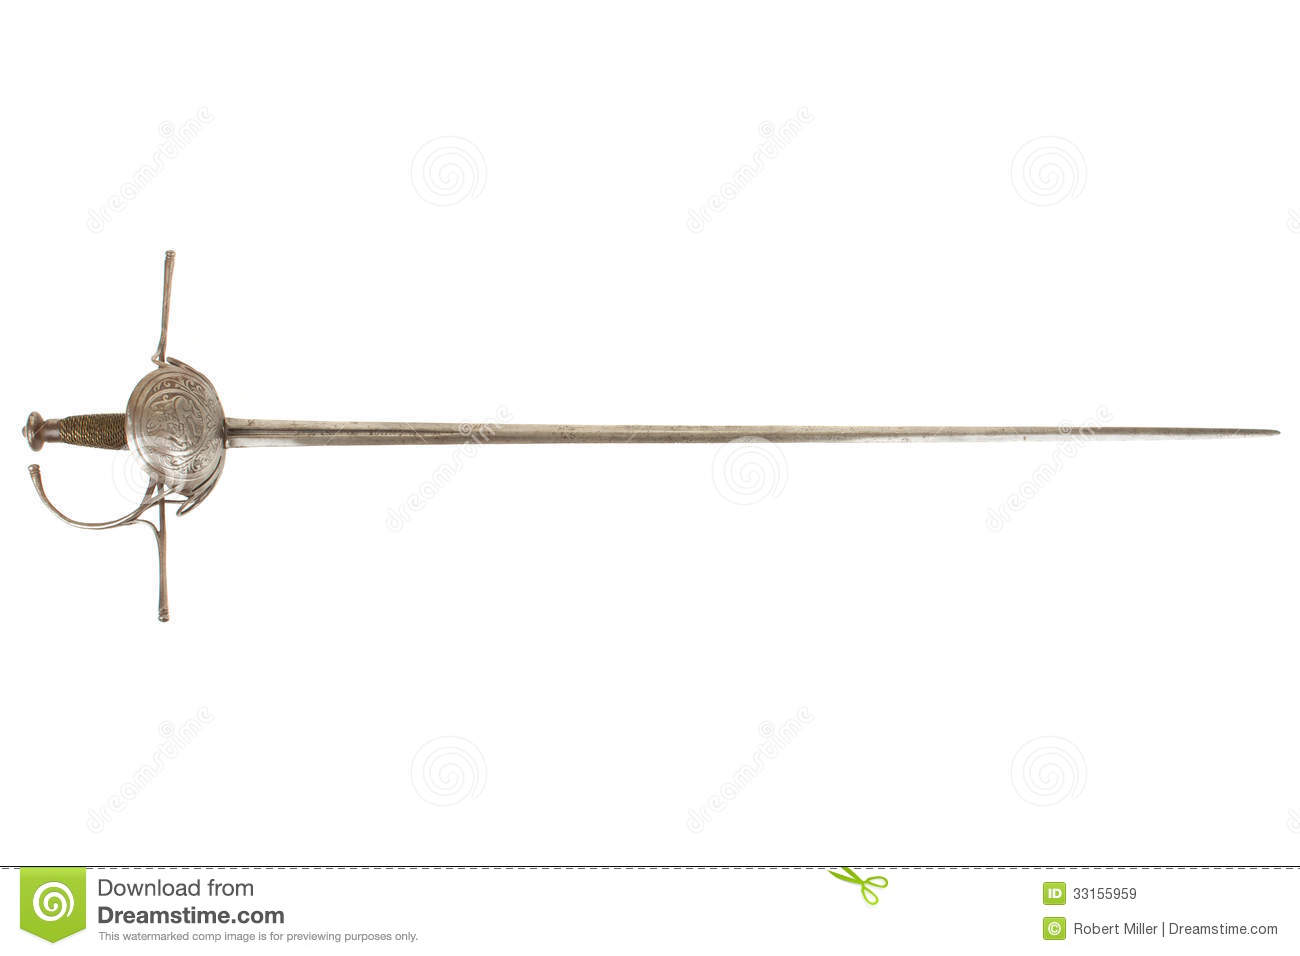 17th century spanish cup hilt rapier isolated on white background